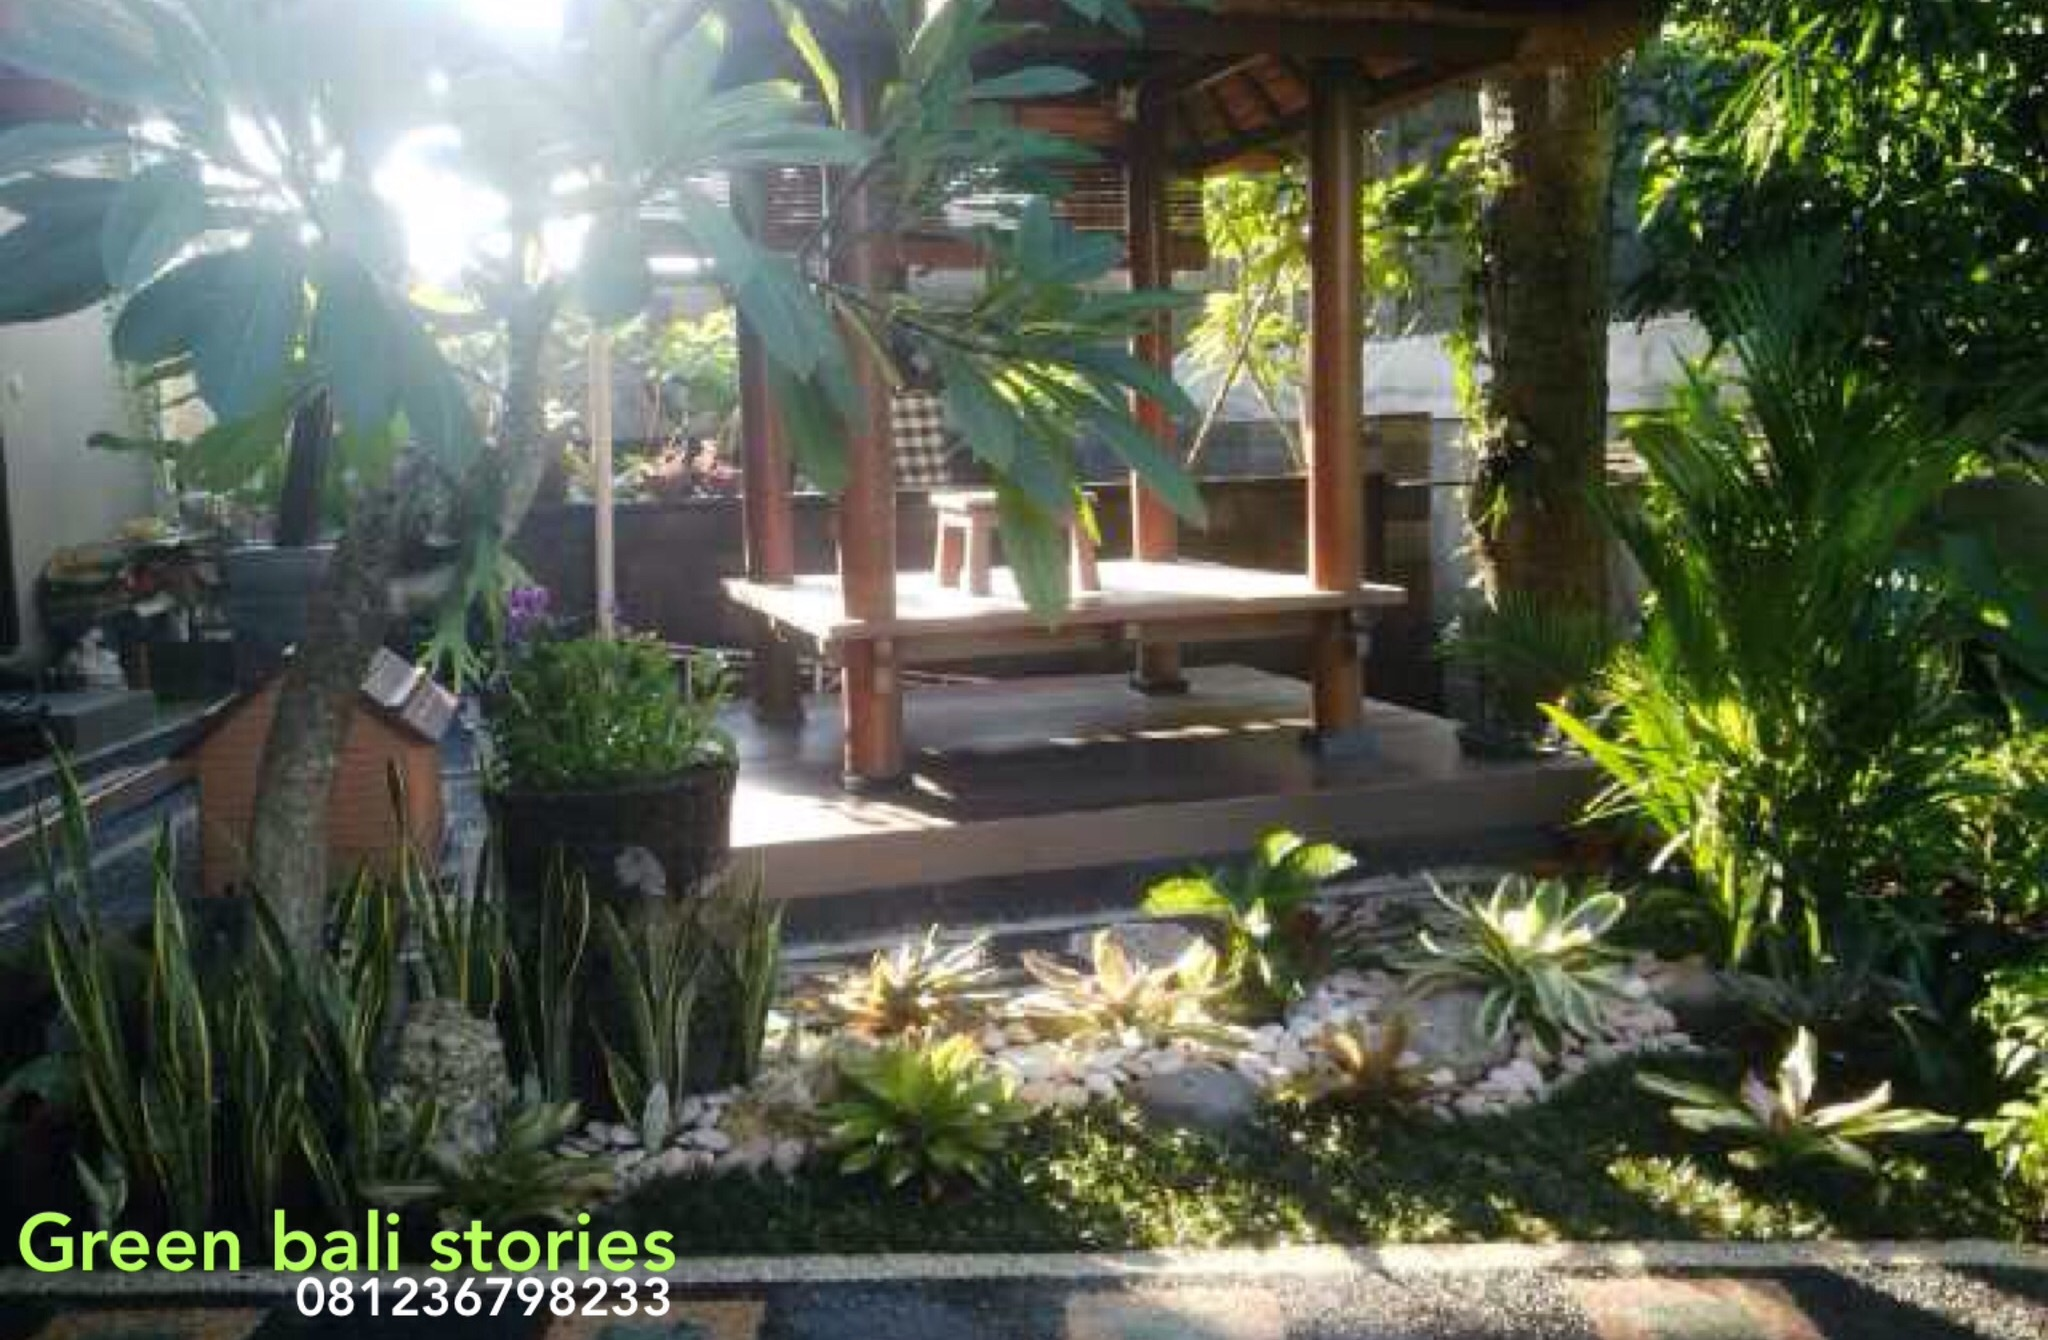 Green bali Stories